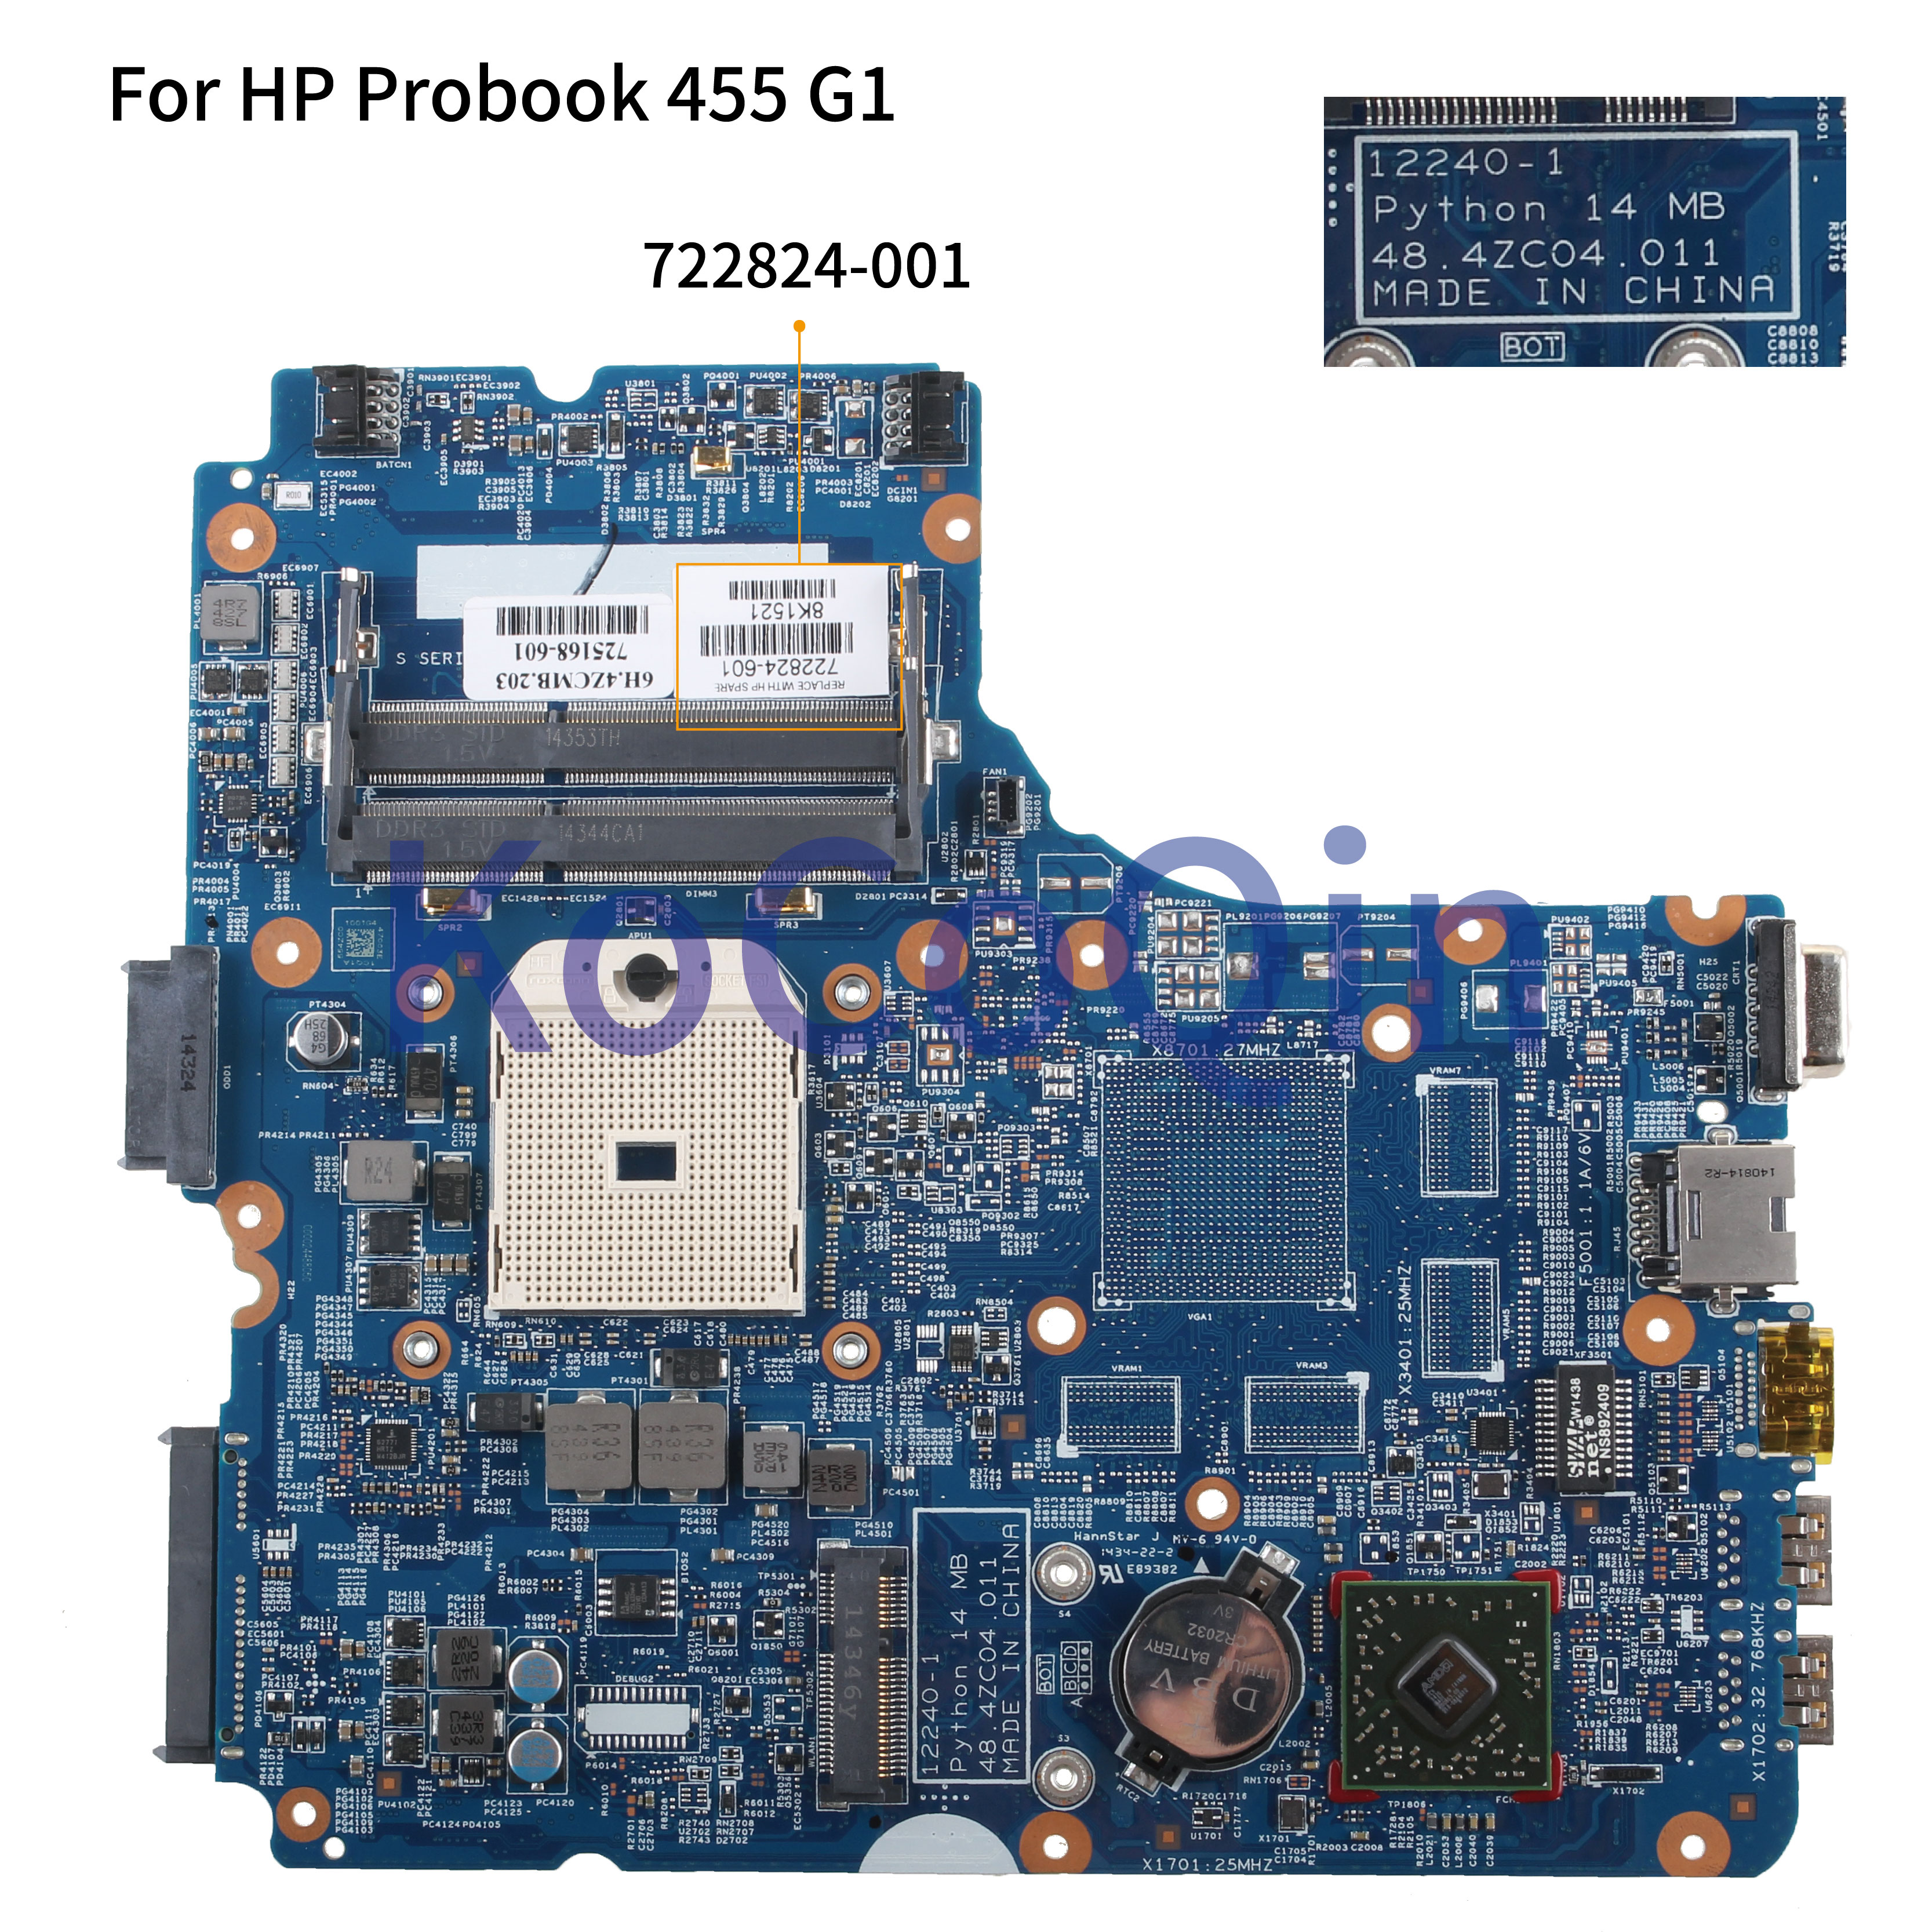 KoCoQin Laptop <font><b>motherboard</b></font> For <font><b>HP</b></font> Probook 445 G1 <font><b>455</b></font> G1 Mainboard 722824-001 722824-601 12240-1 48.4ZC04.011 AMD image